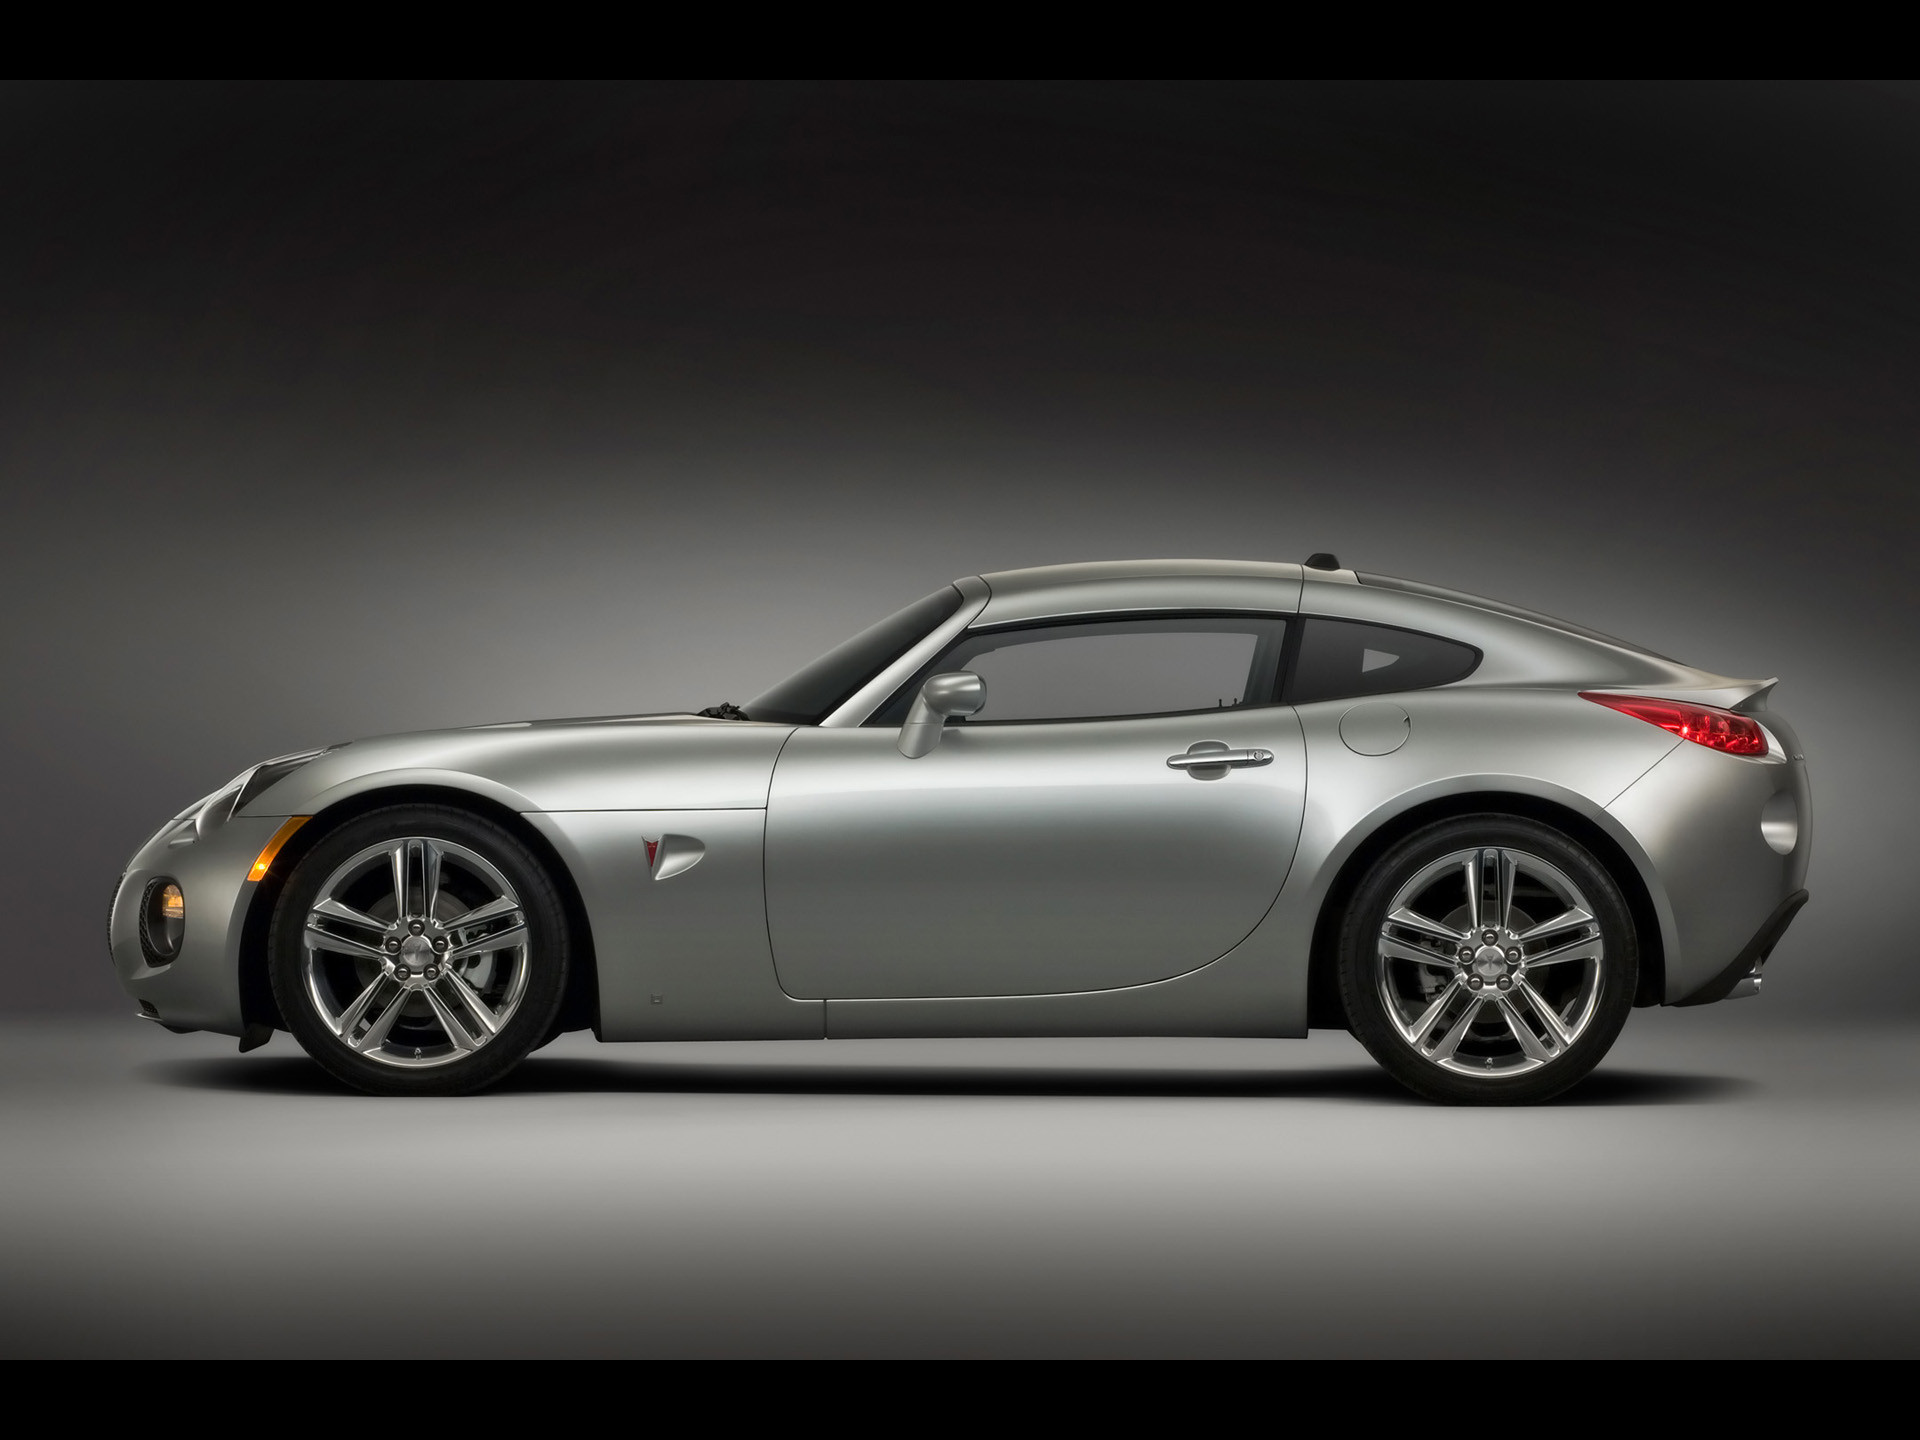 1920x1440 Image: Pontiac Solstice wallpapers and stock photos. Â«